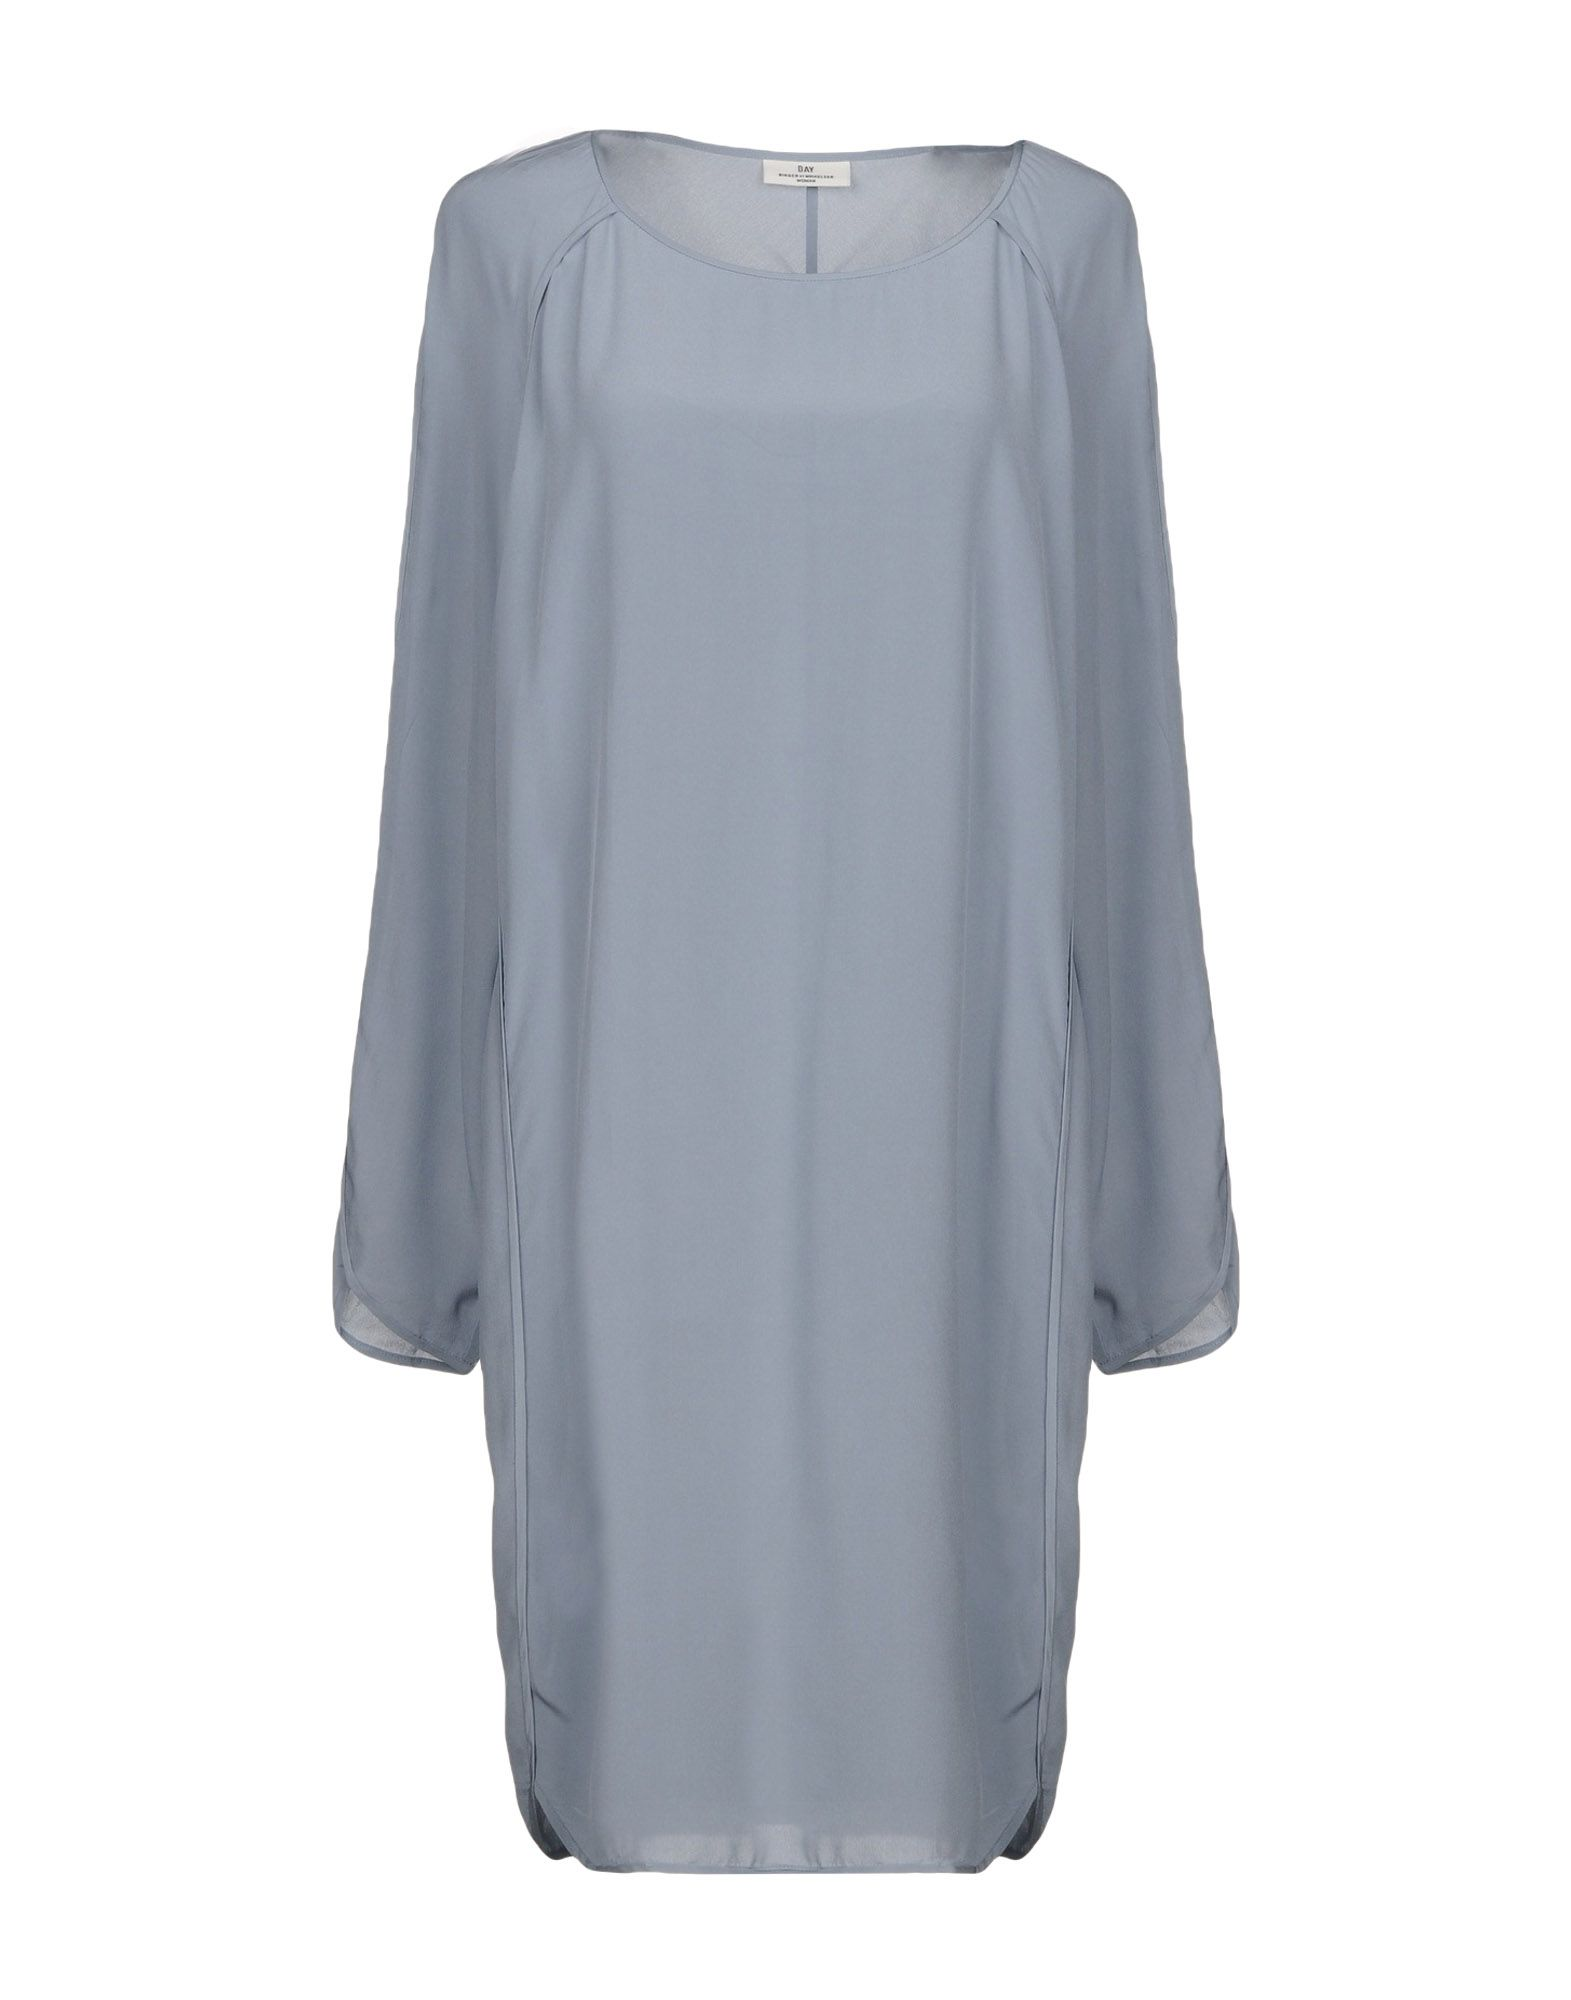 DAY BIRGER ET MIKKELSEN Short Dress in Grey